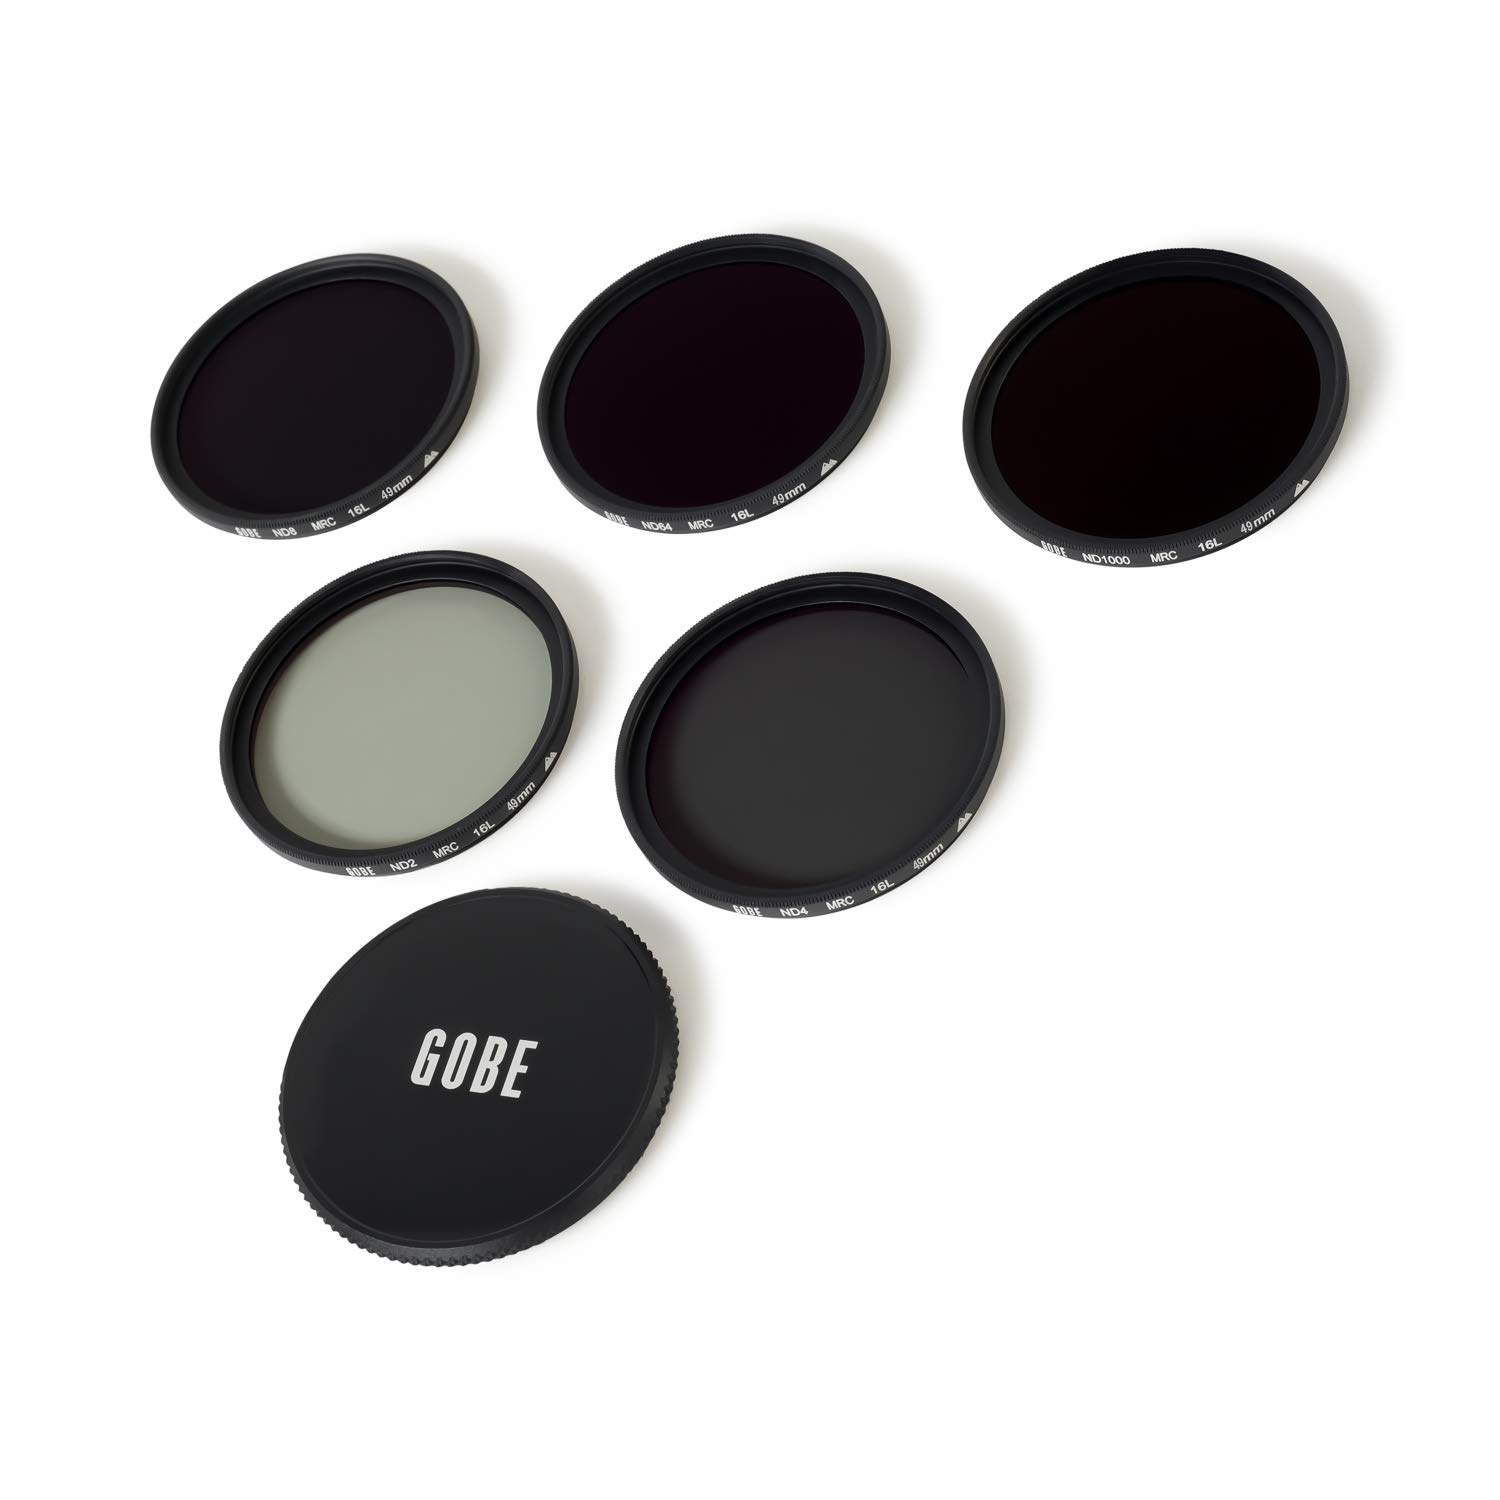 ND64 Gobe 55mm ND2 ND4 2Peak ND8 ND1000 Lens Filter Kit